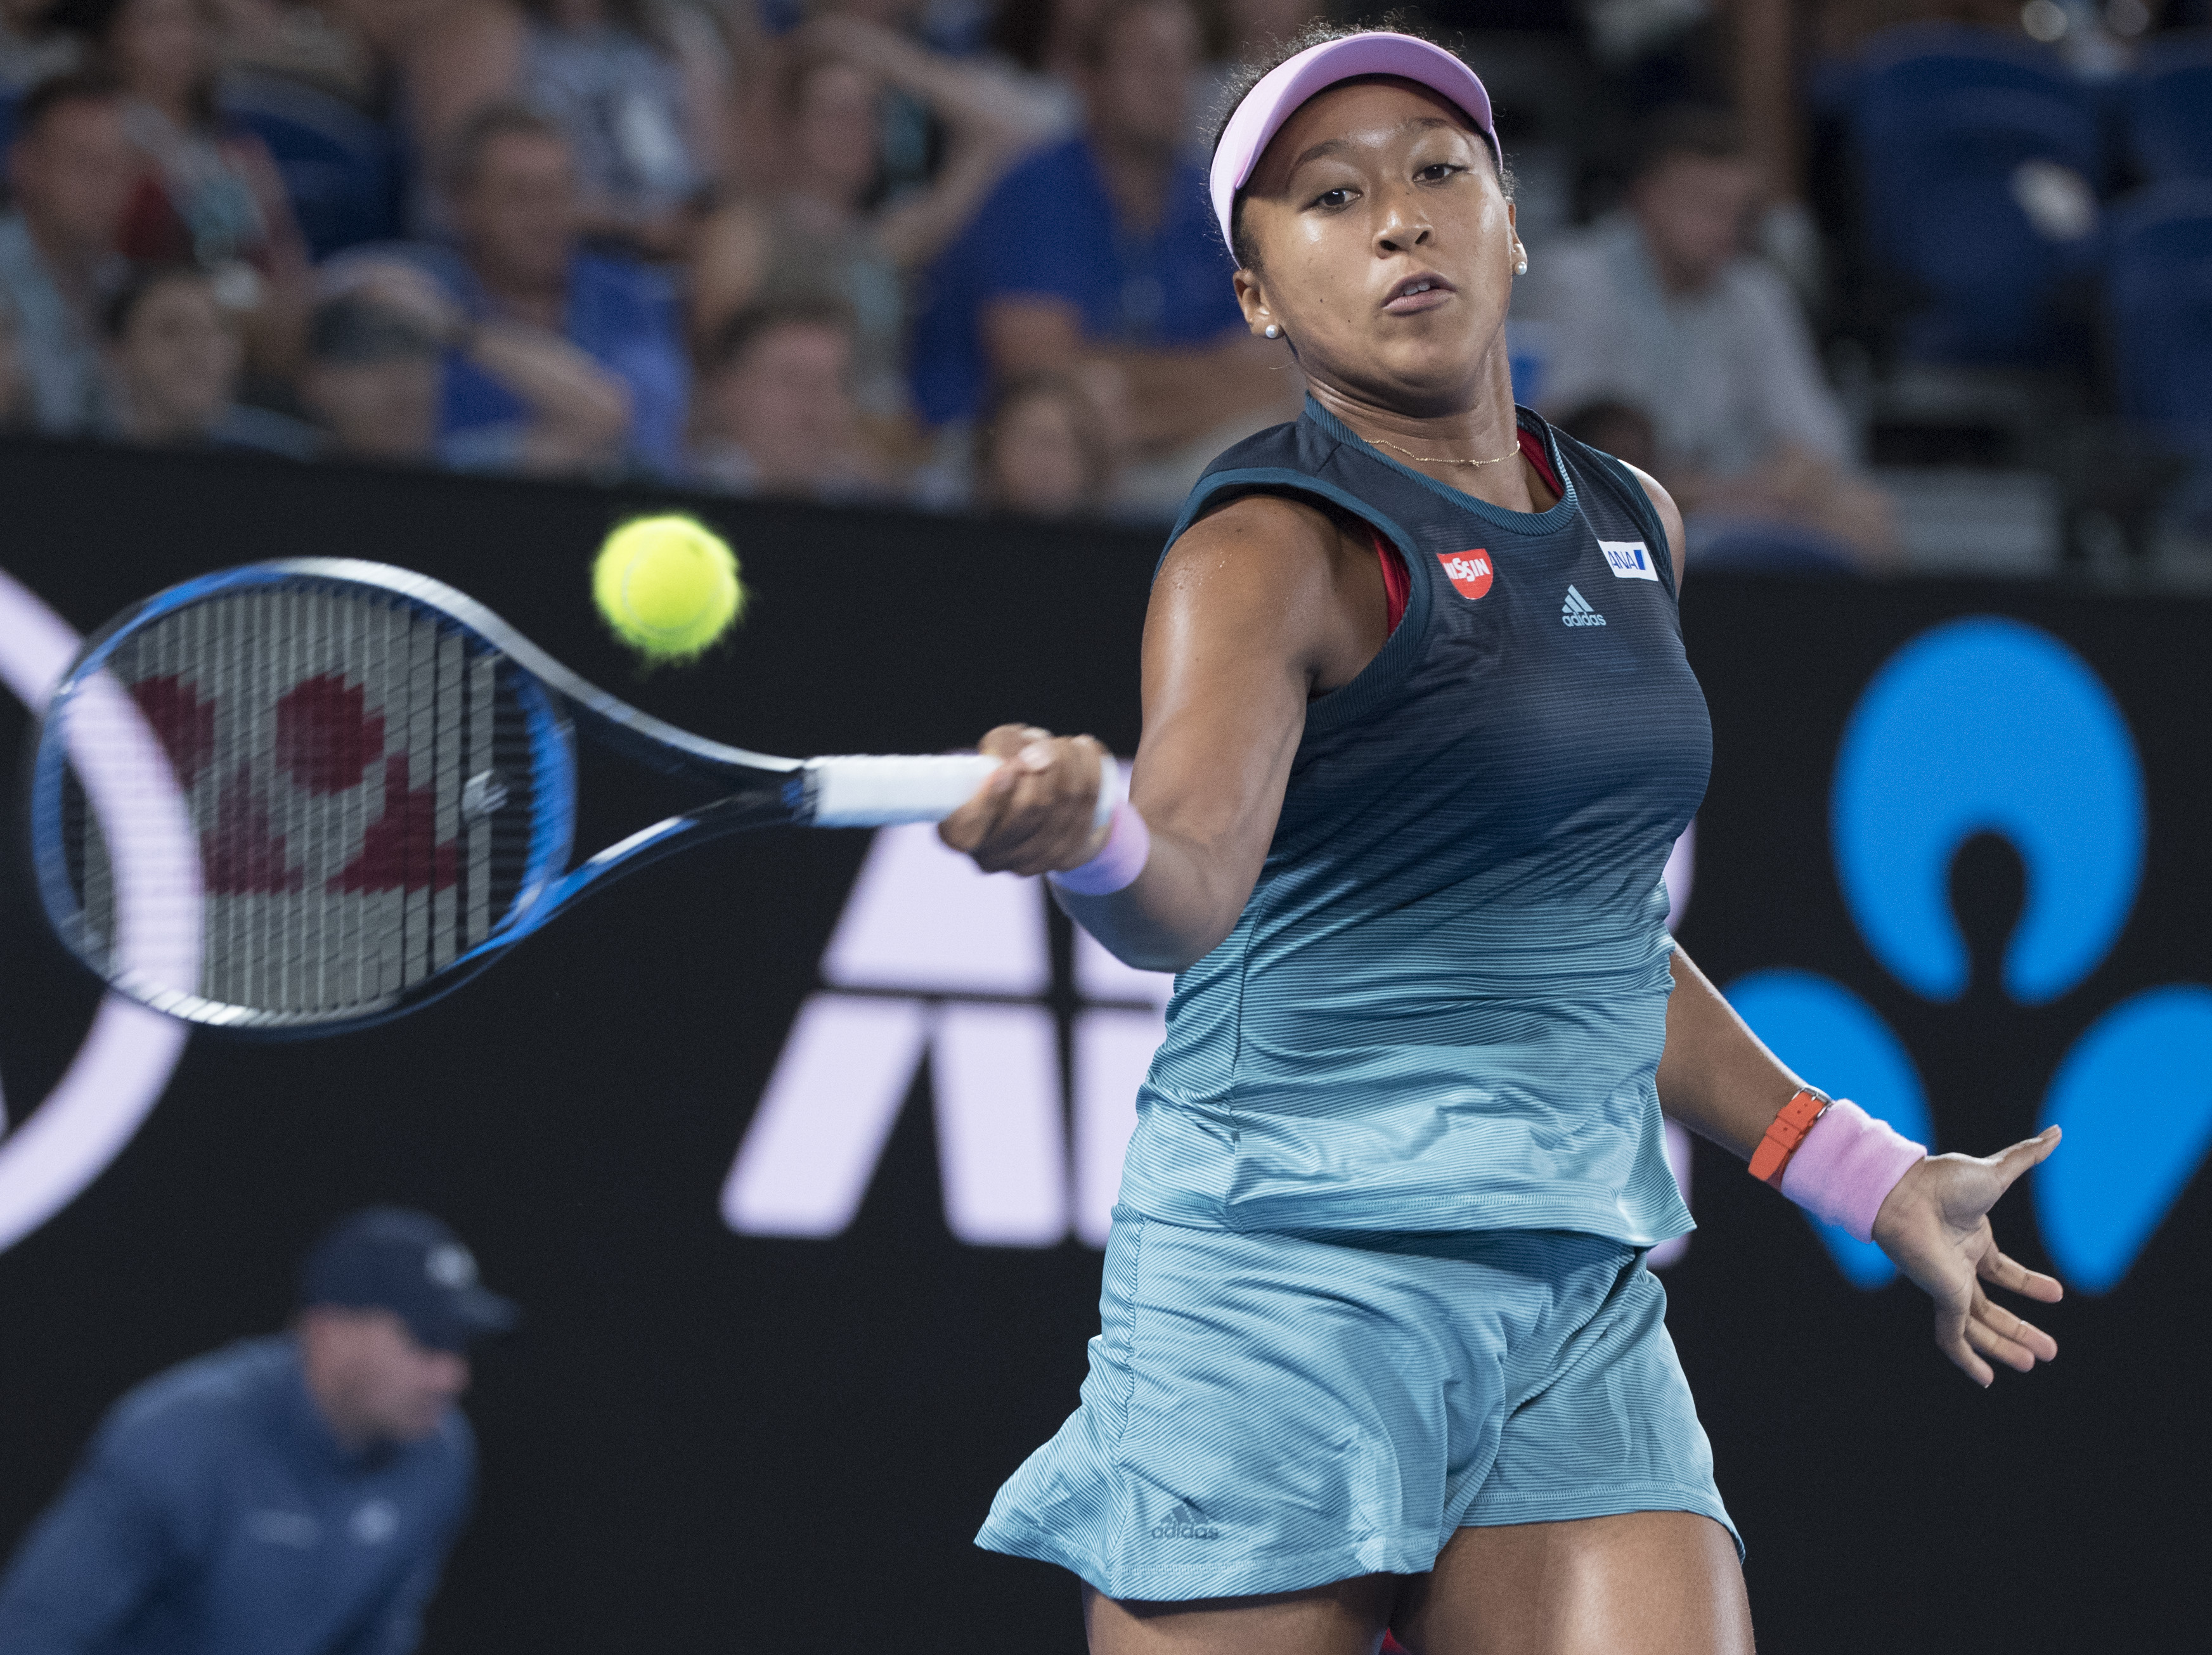 Sports News Roundup: Osaka pulls off 2 wins in Rome; Federer fights off match points